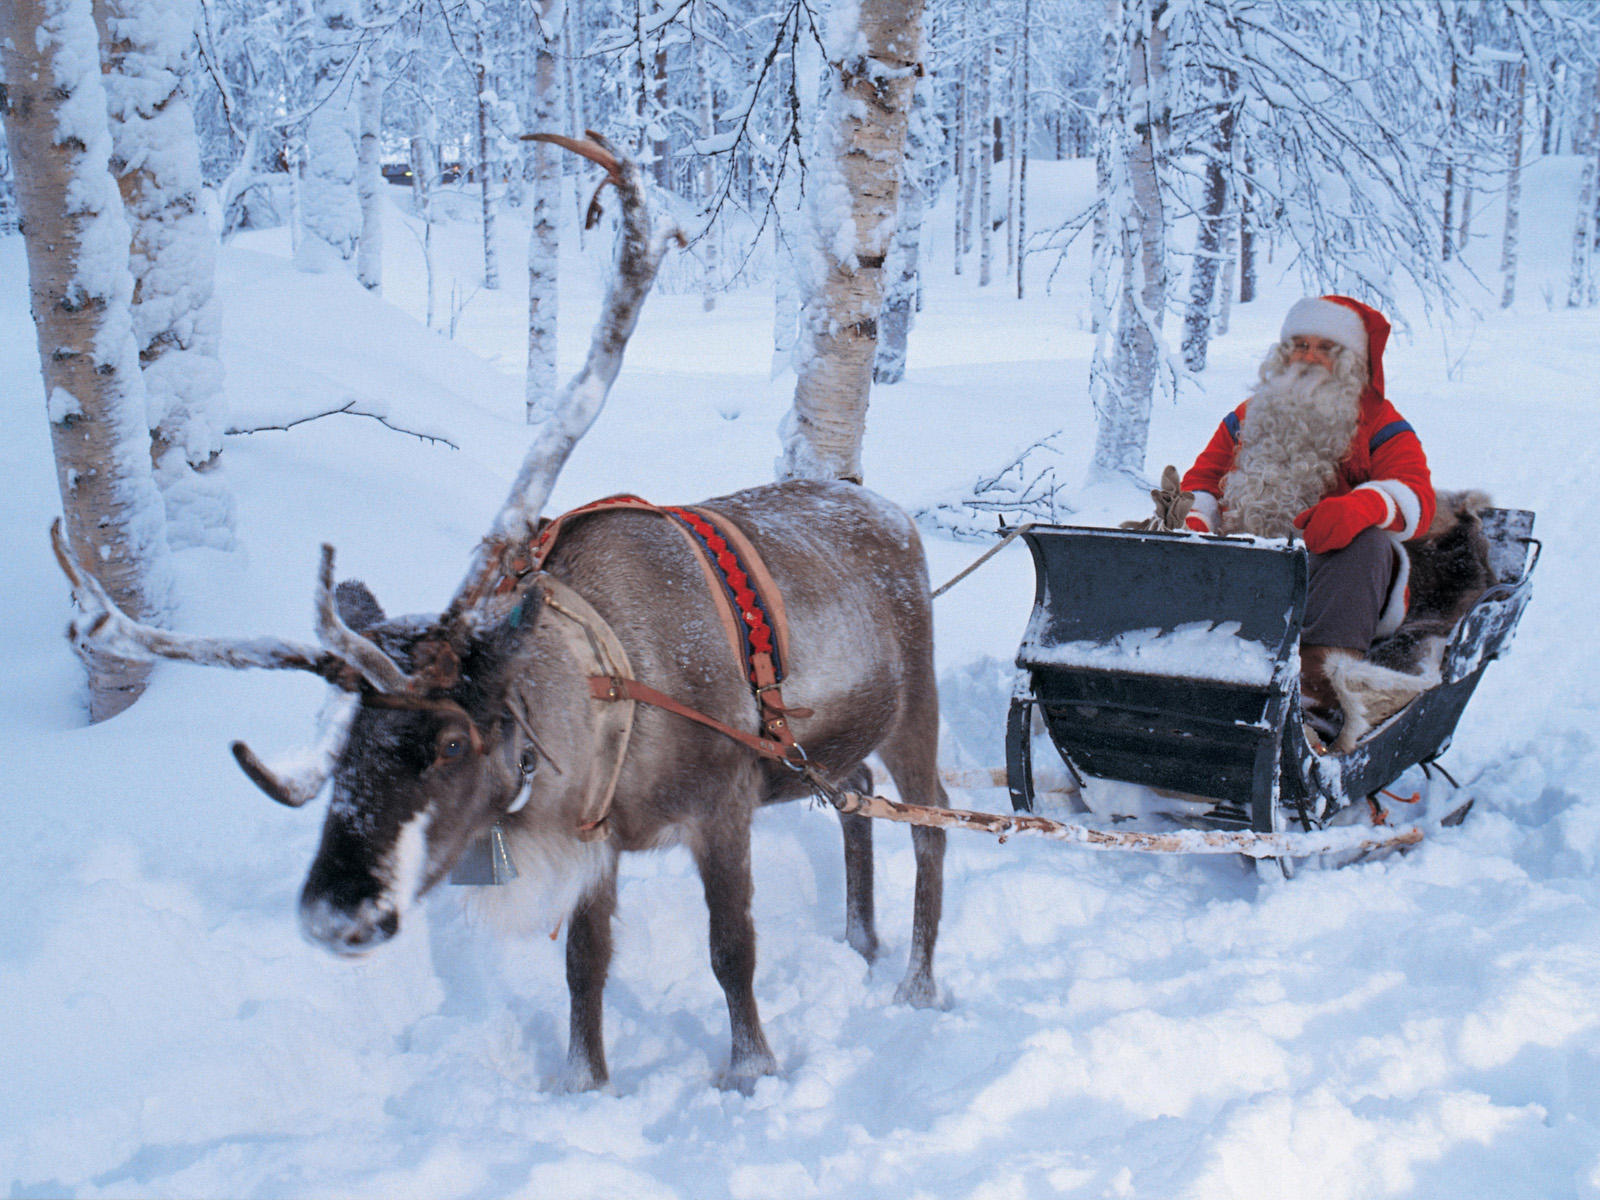 winter holiday lapland europe santa claus sleigh ride